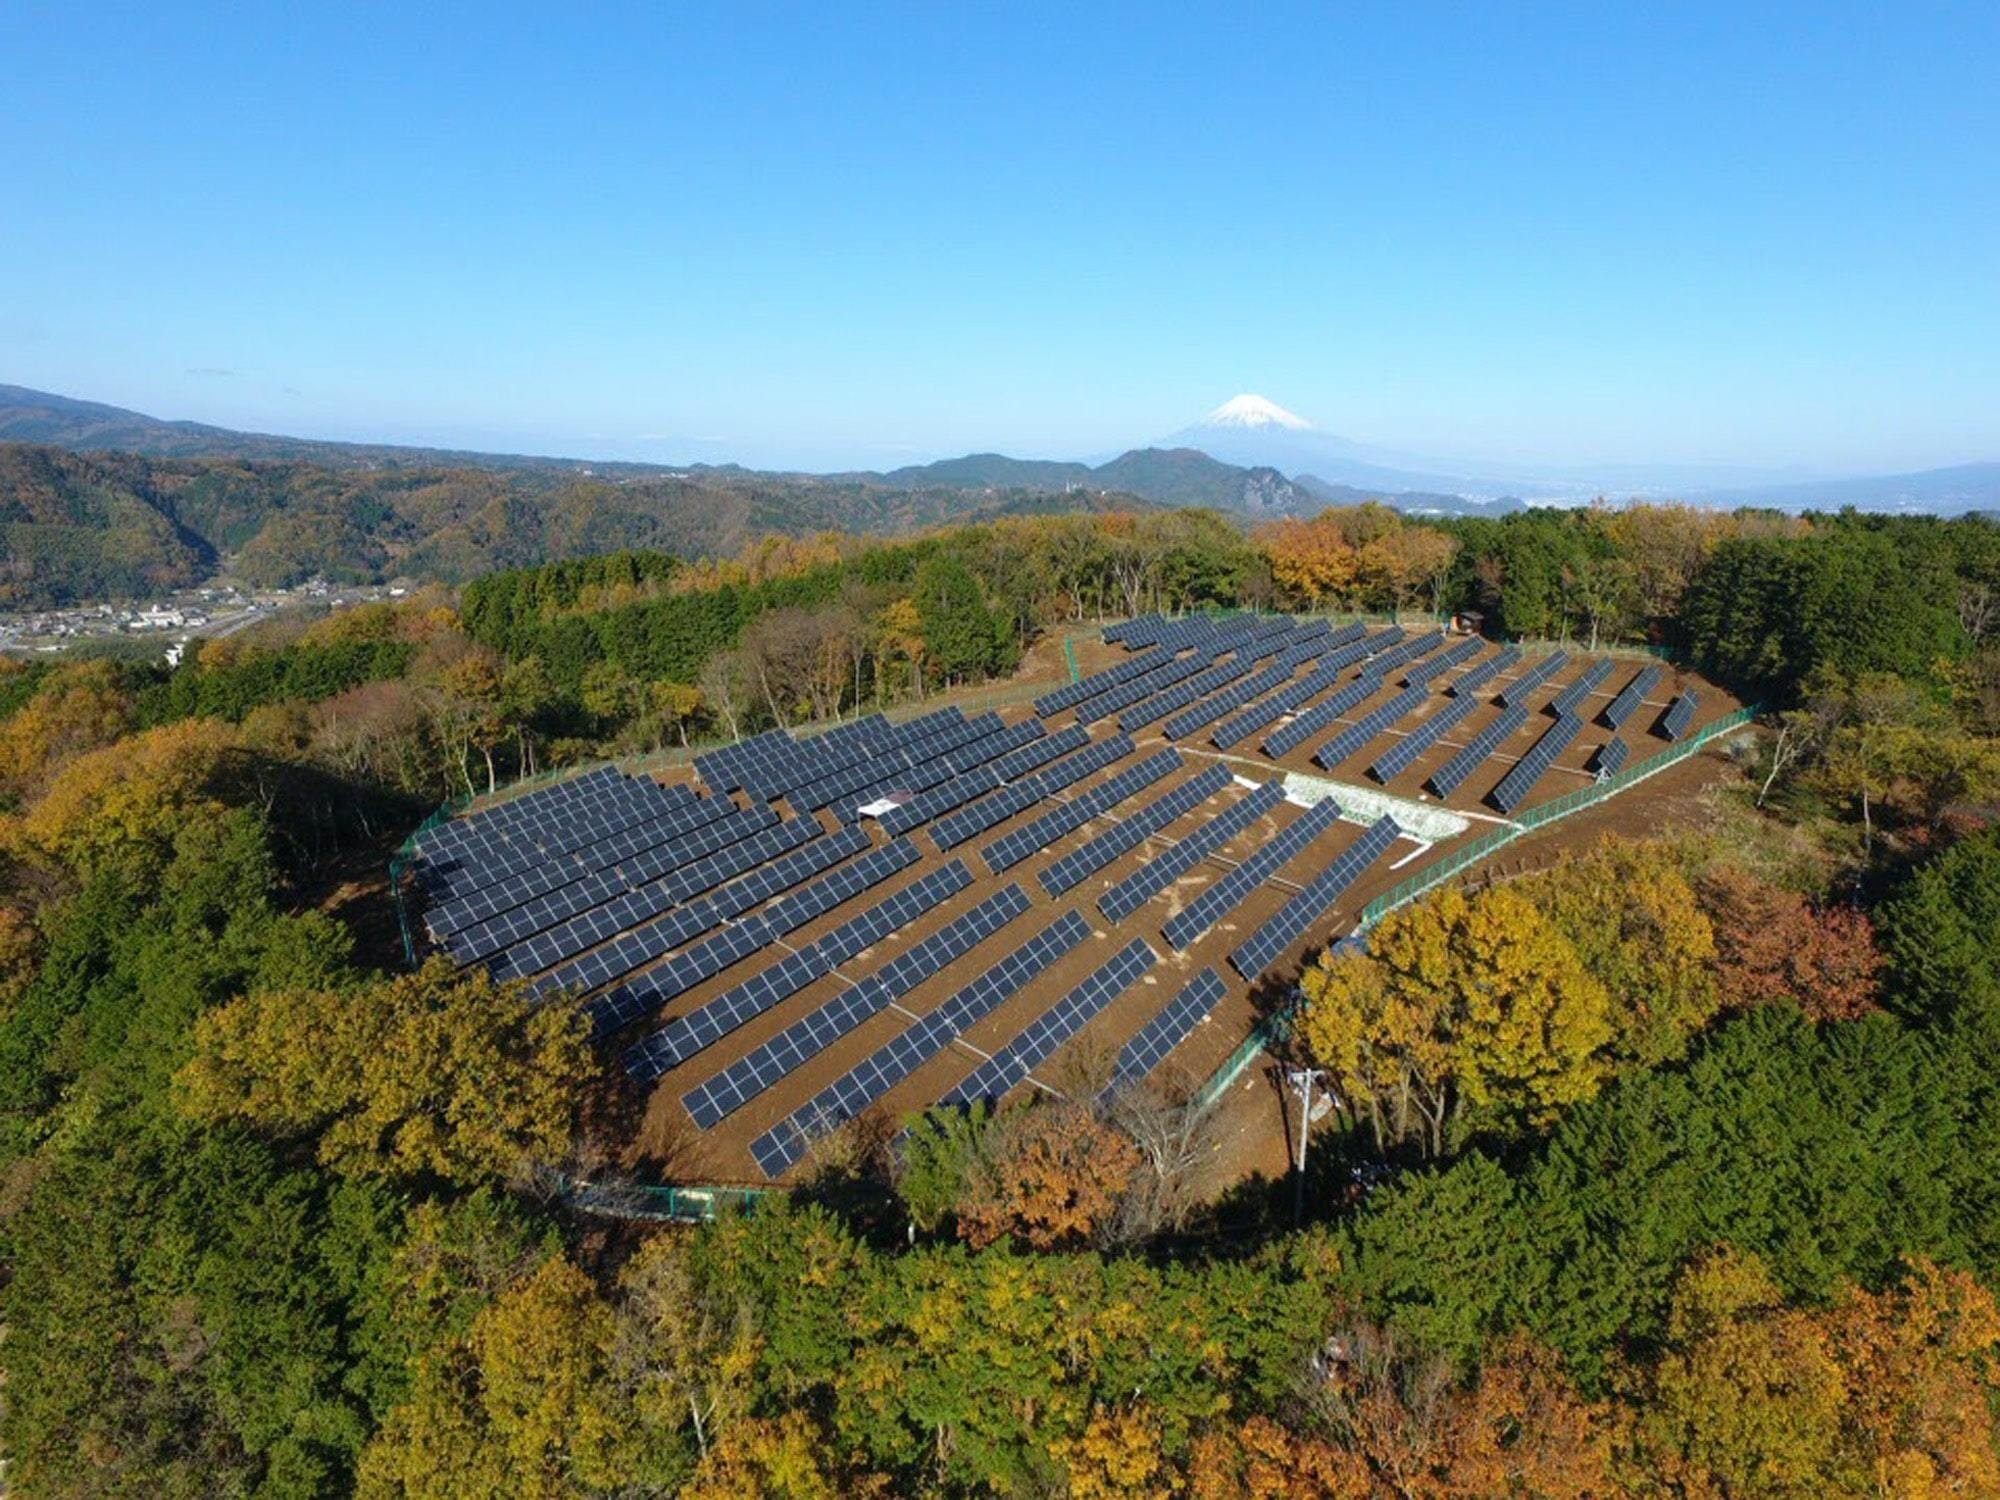 Solar plant in Japan, Mount Fuji in the distance